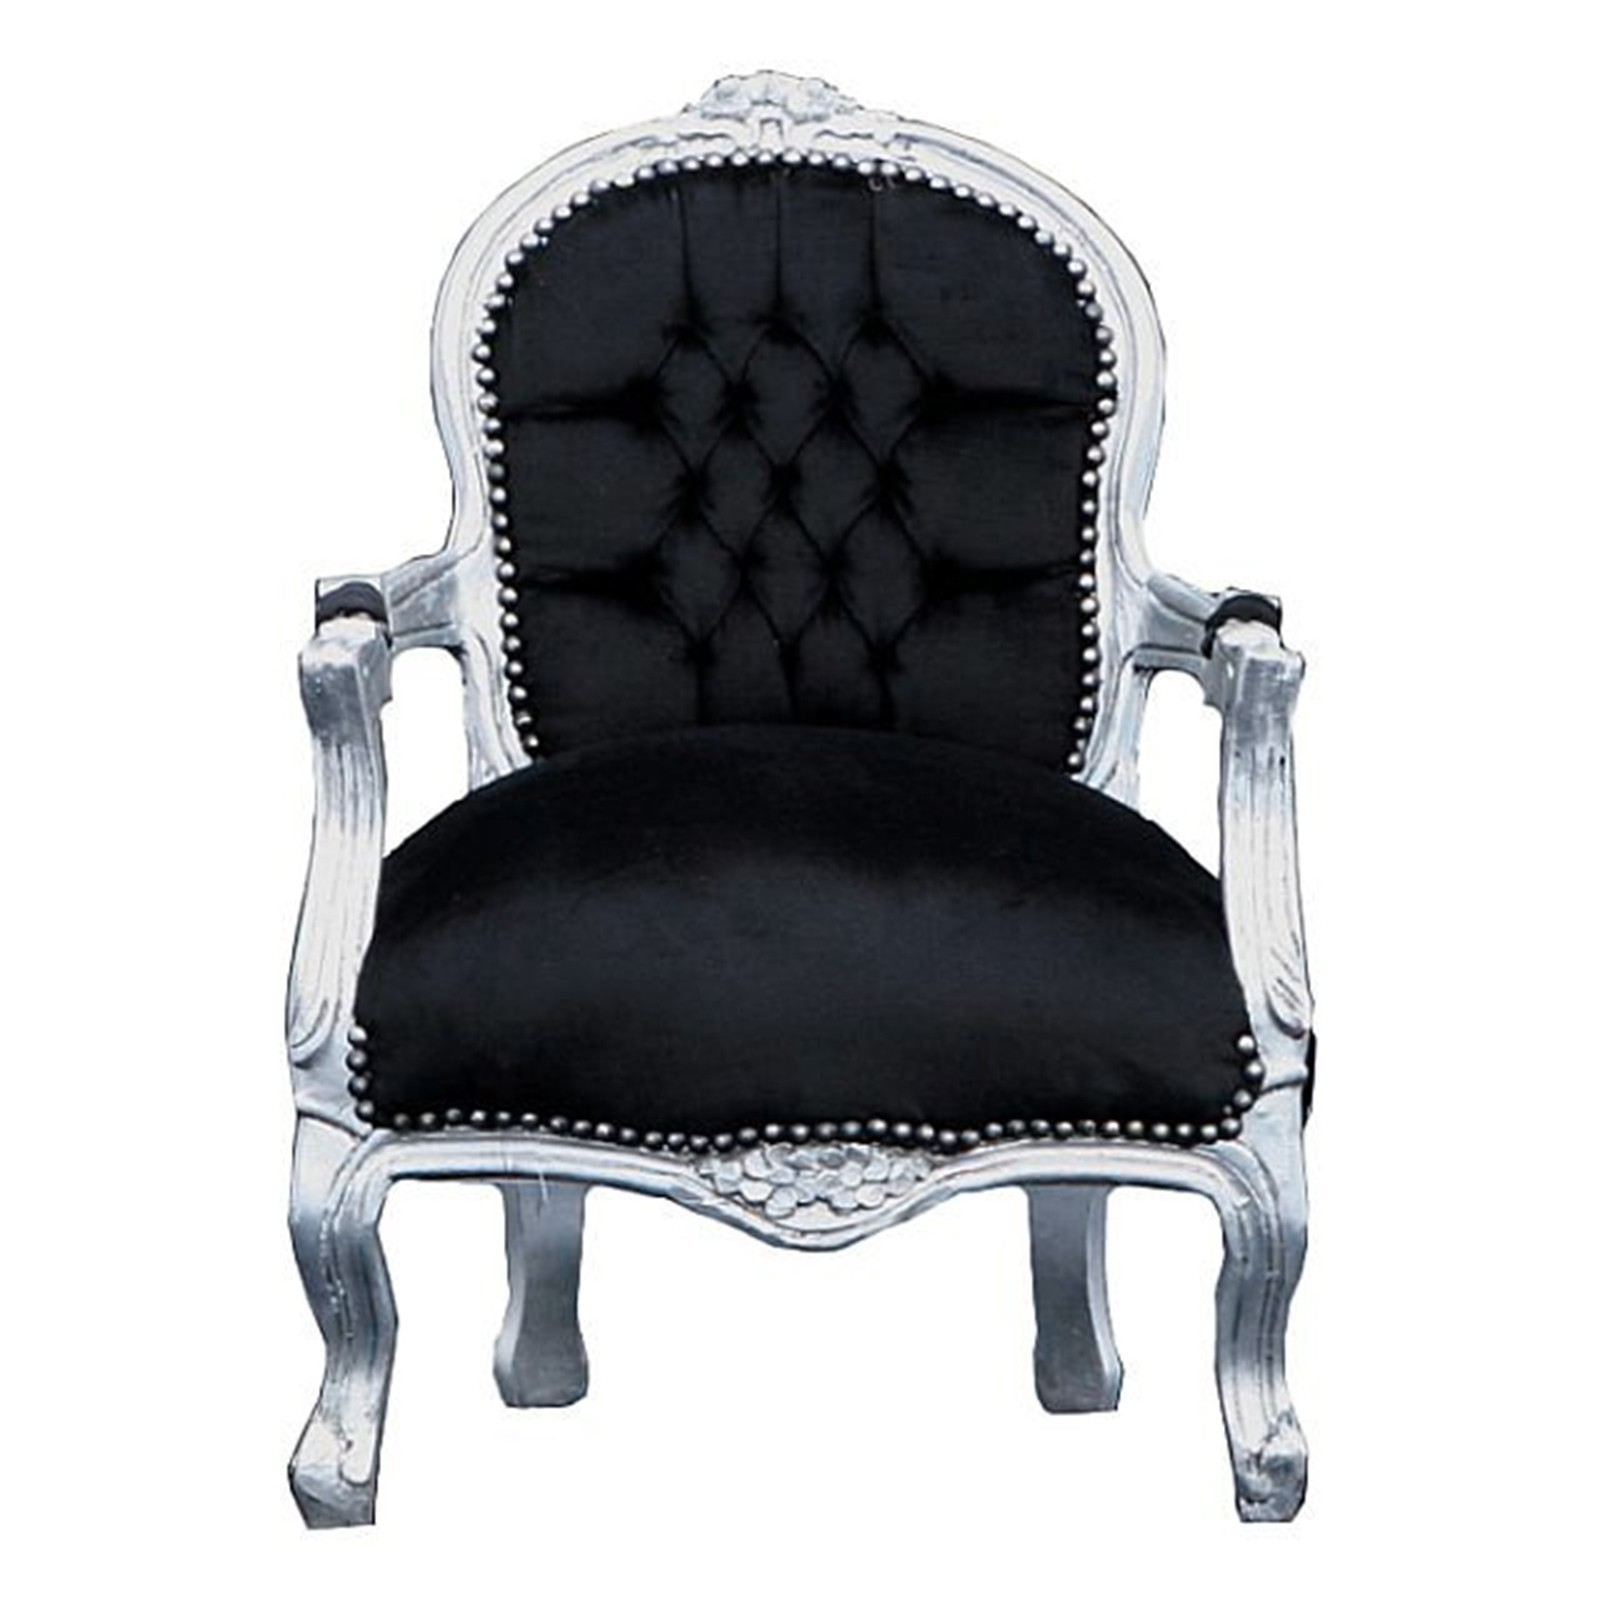 Superieur Kids Chairs, Elegant Silver Leafed Childu0027s Chair In Black, A Must Have!